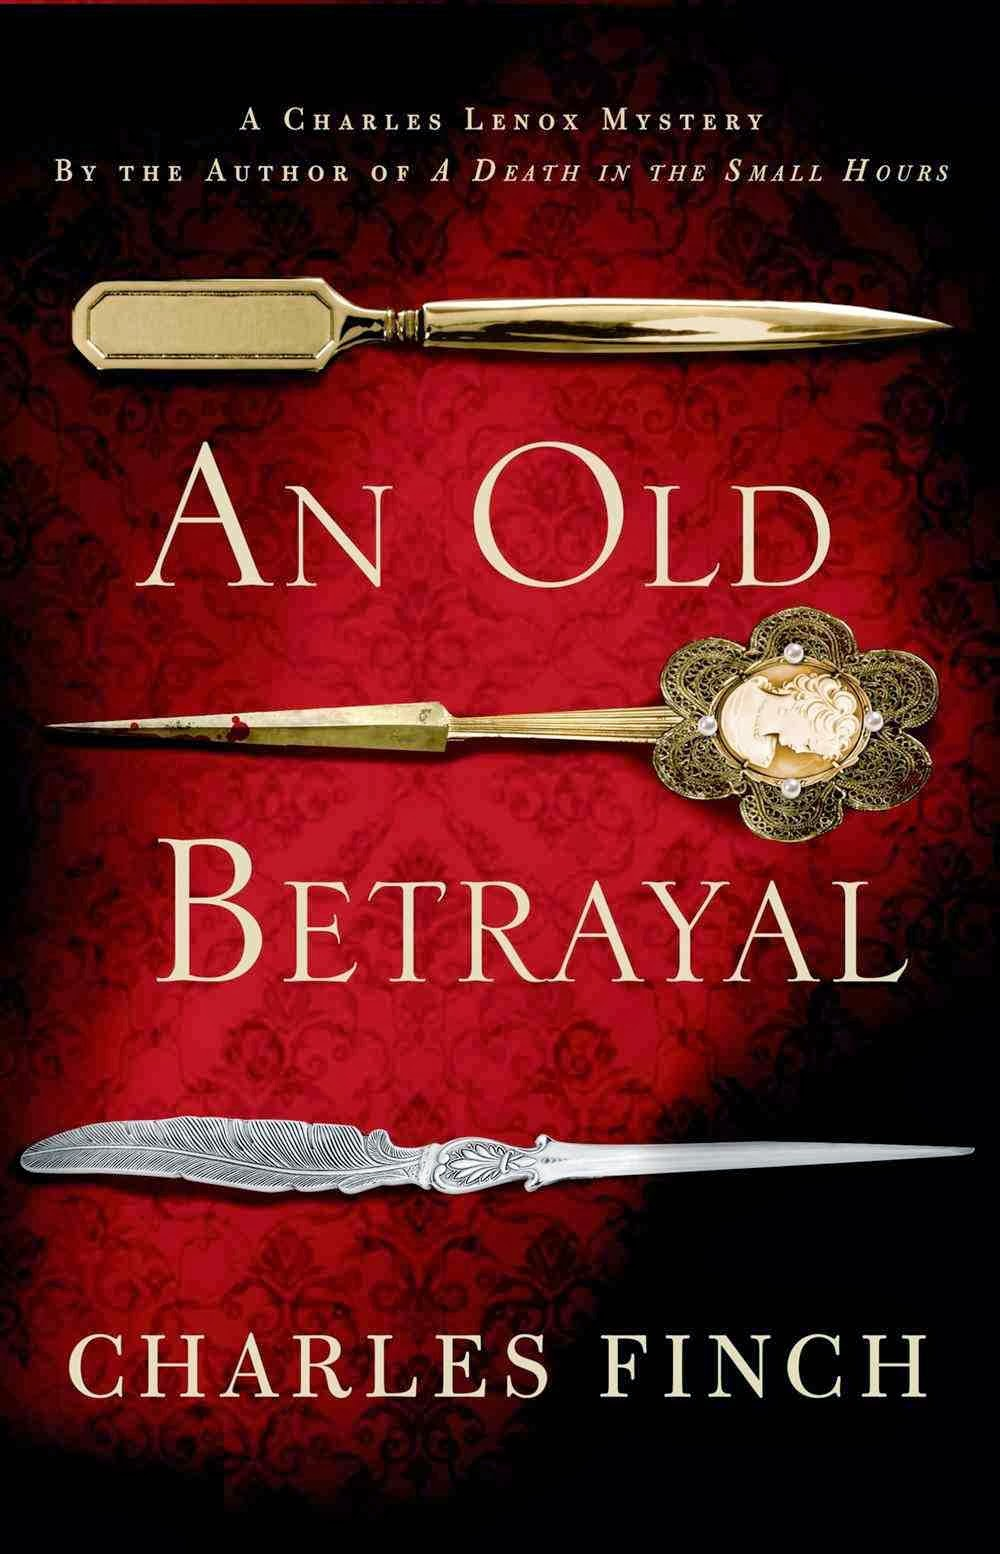 Girl lost in a book october 2013 review giveaway an old betrayal by charles finch fandeluxe Image collections